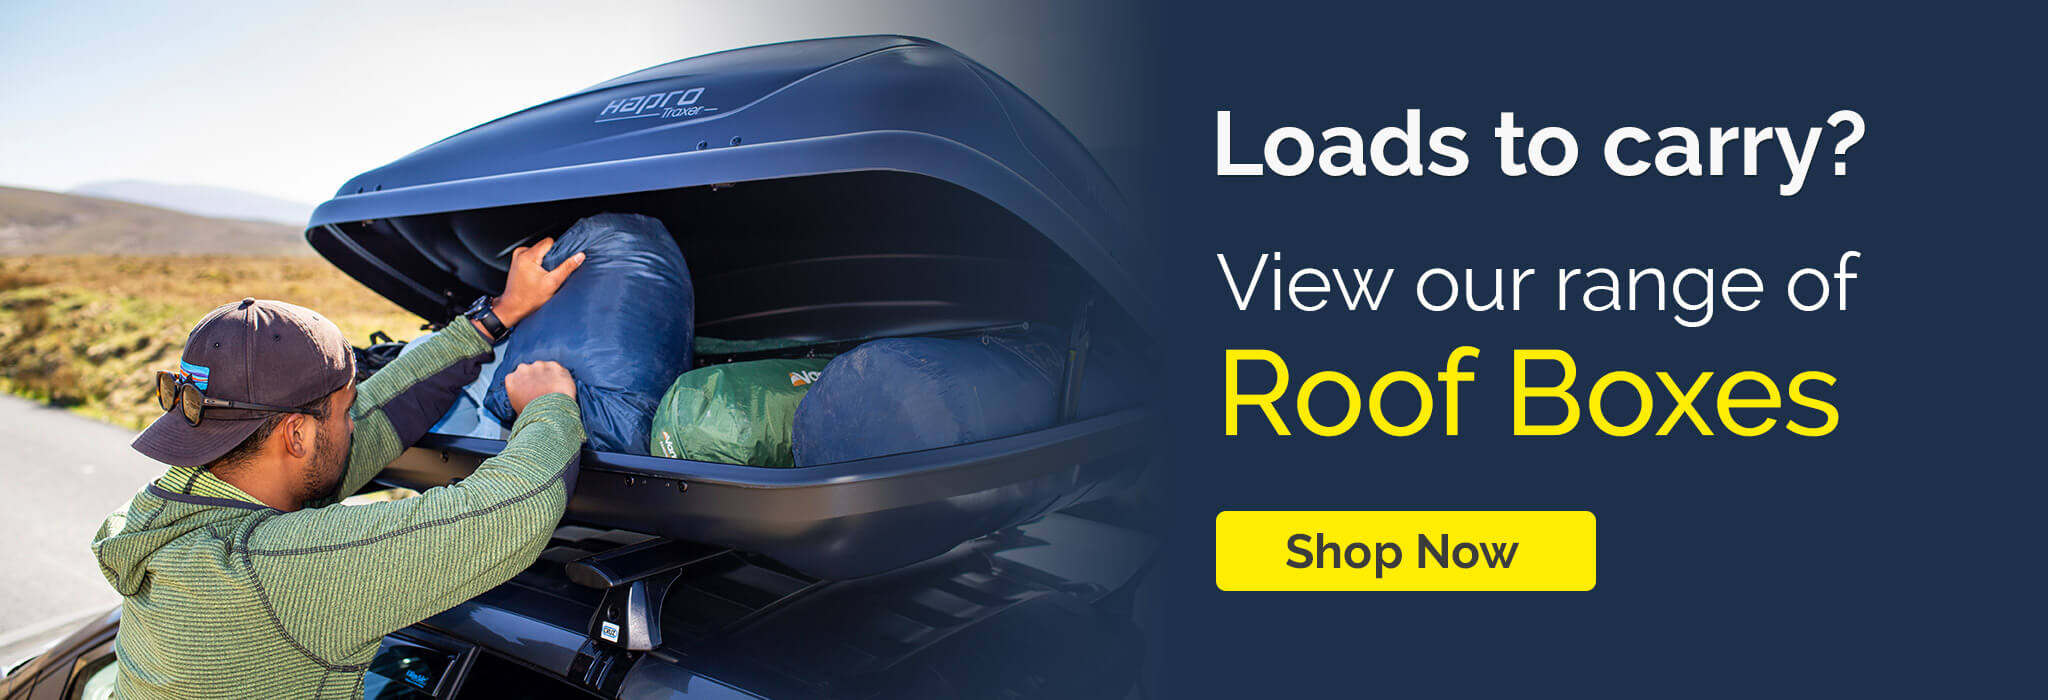 Loads to carry? Check out range of roof boxes